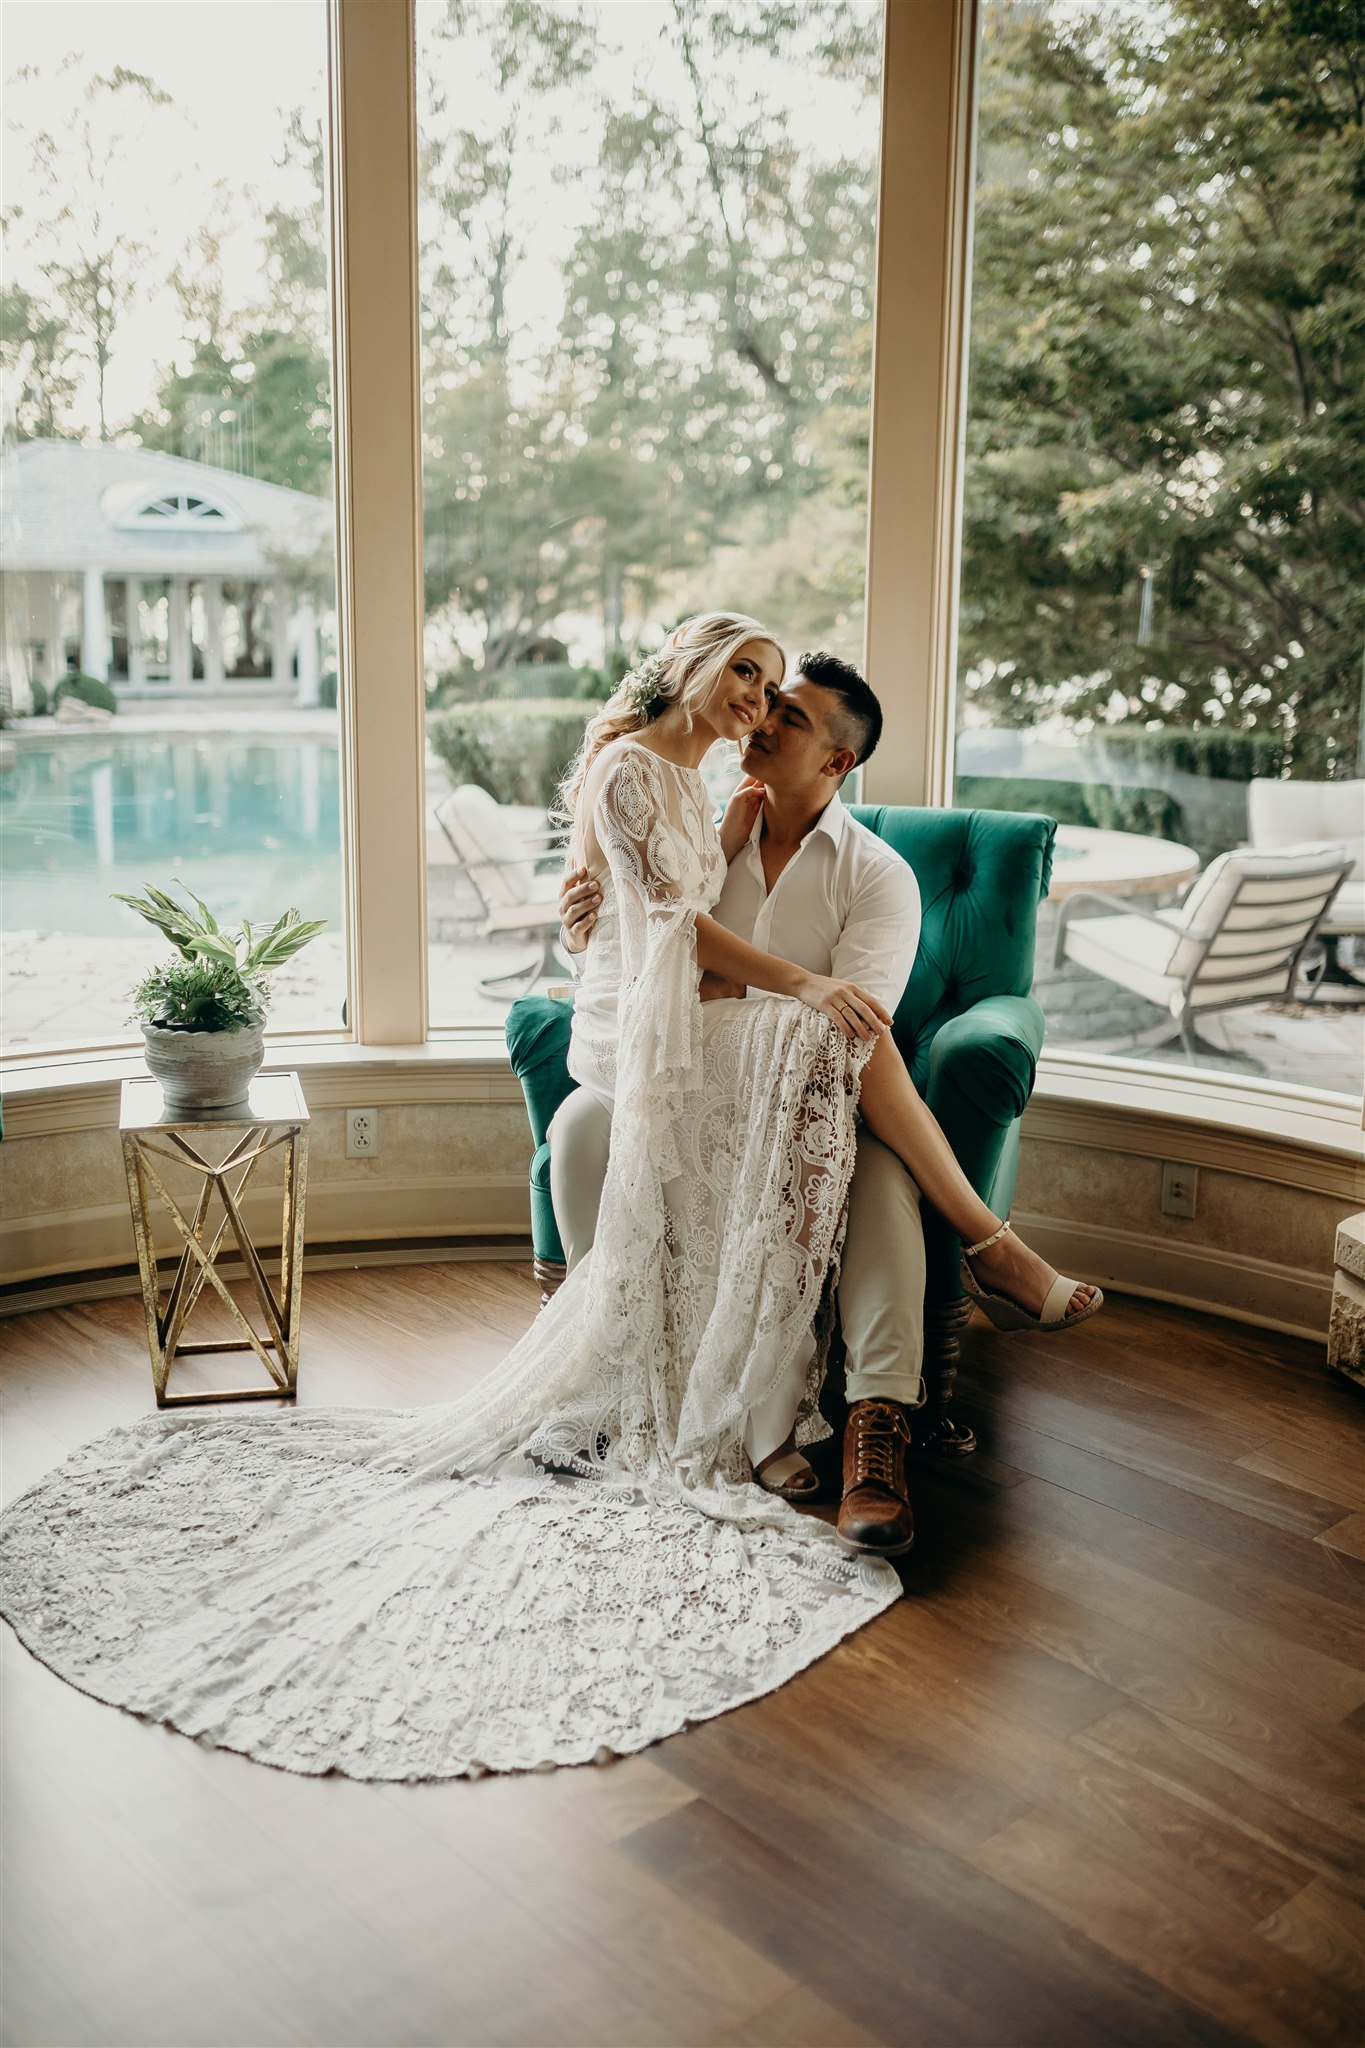 Boho Wedding Decor: Boho Wedding Dress for Winter Wedding Styled Shoot featured on Nashville Bride Guide